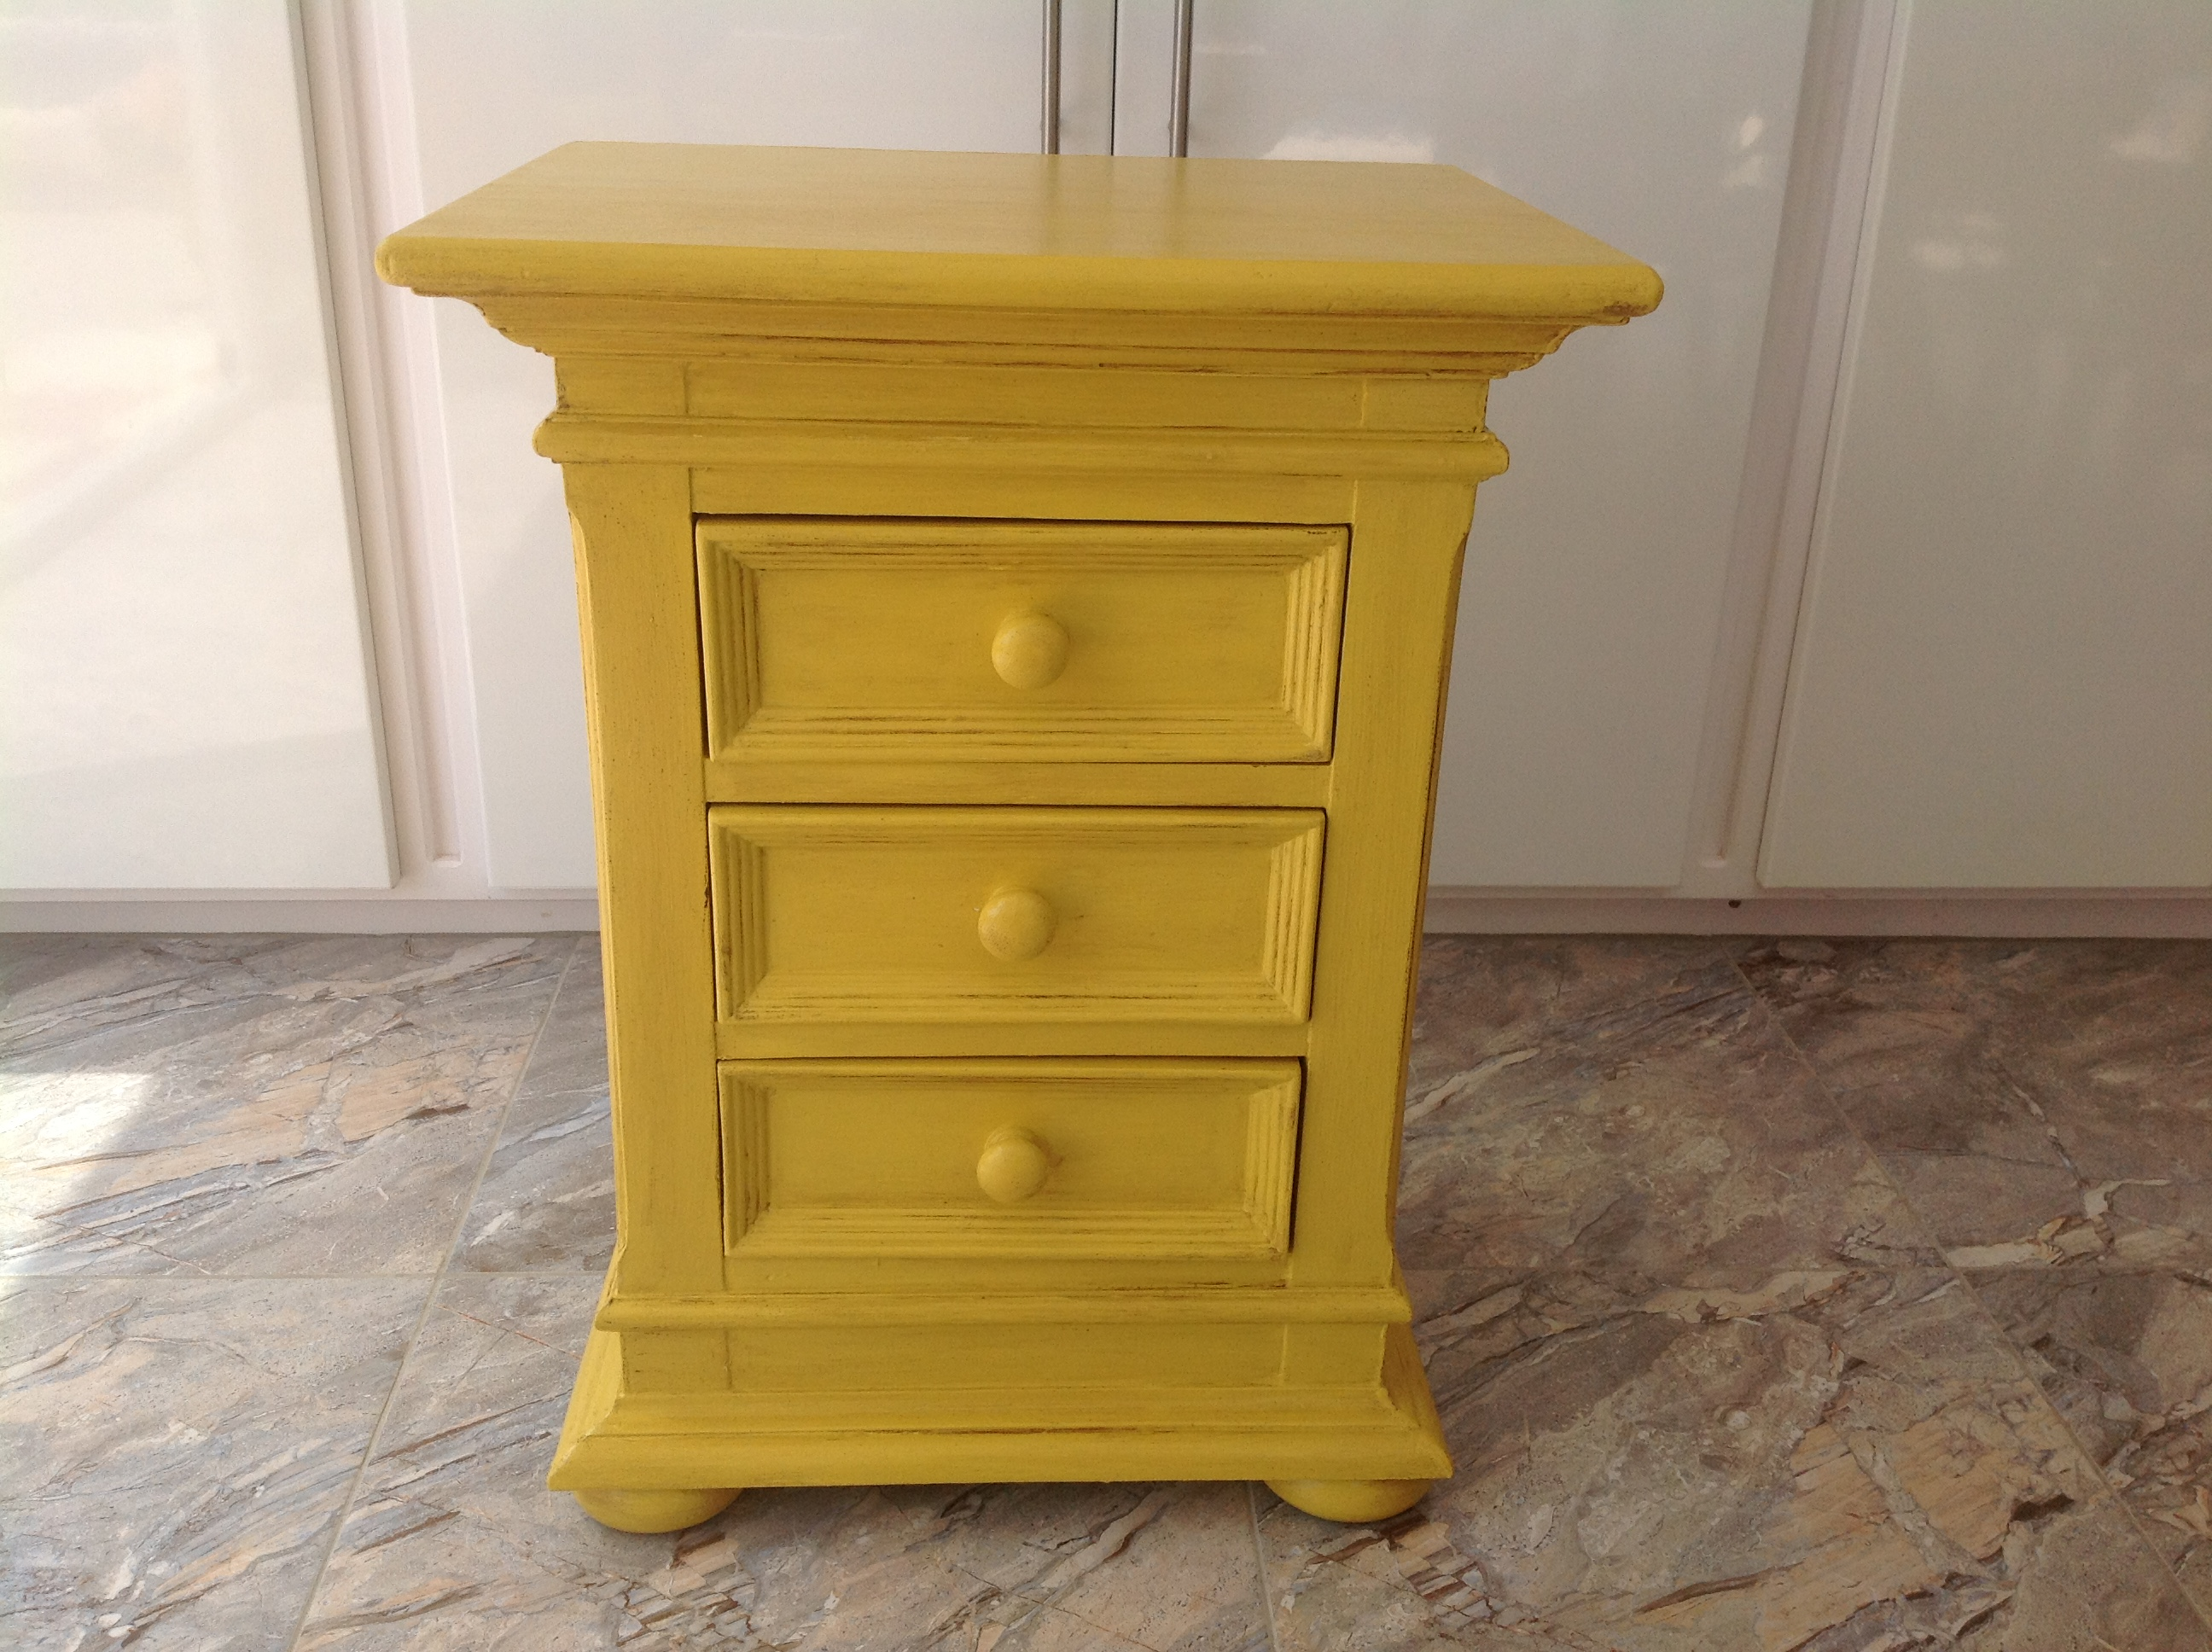 AFER - Bedside Unit Finished in Annie Sloans Paint - English Yellow